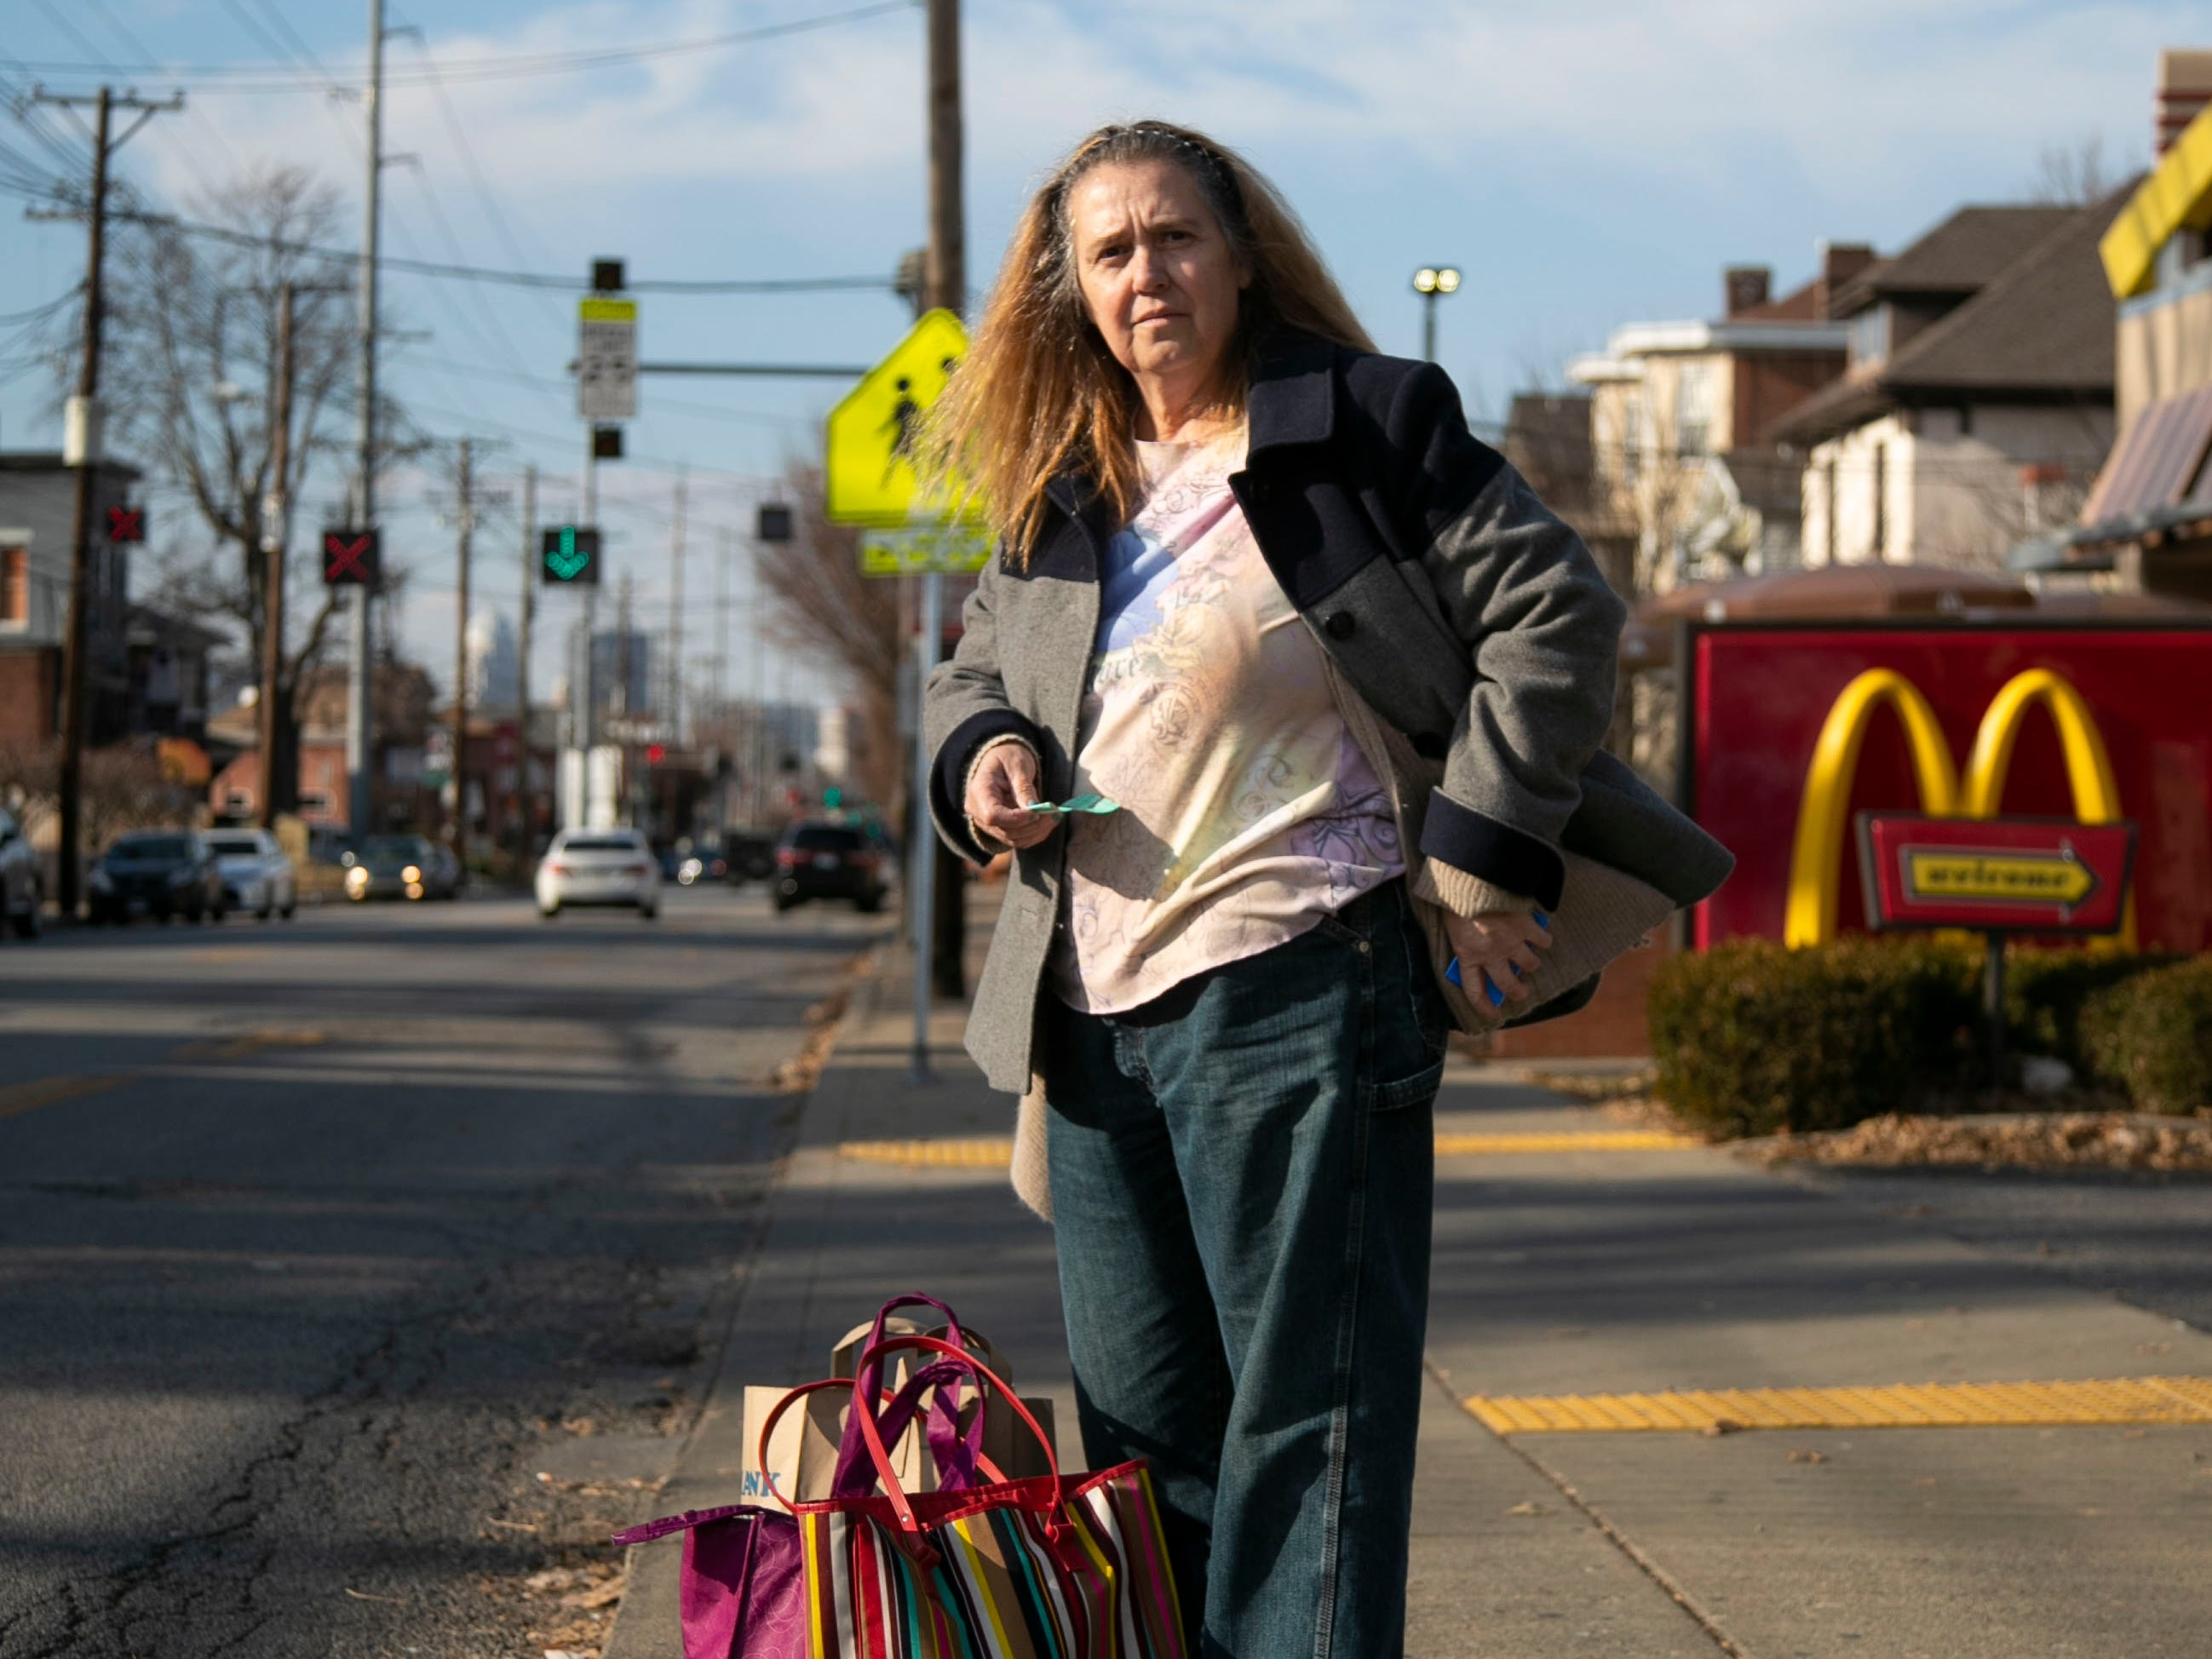 Michele Dutcher takes a bus to and from the Valumarket at the Mid City Mall on Bardstown Road a few times a week for groceries. She can't carry a lot so frequent trips are necessary from her Old Louisville apartment.